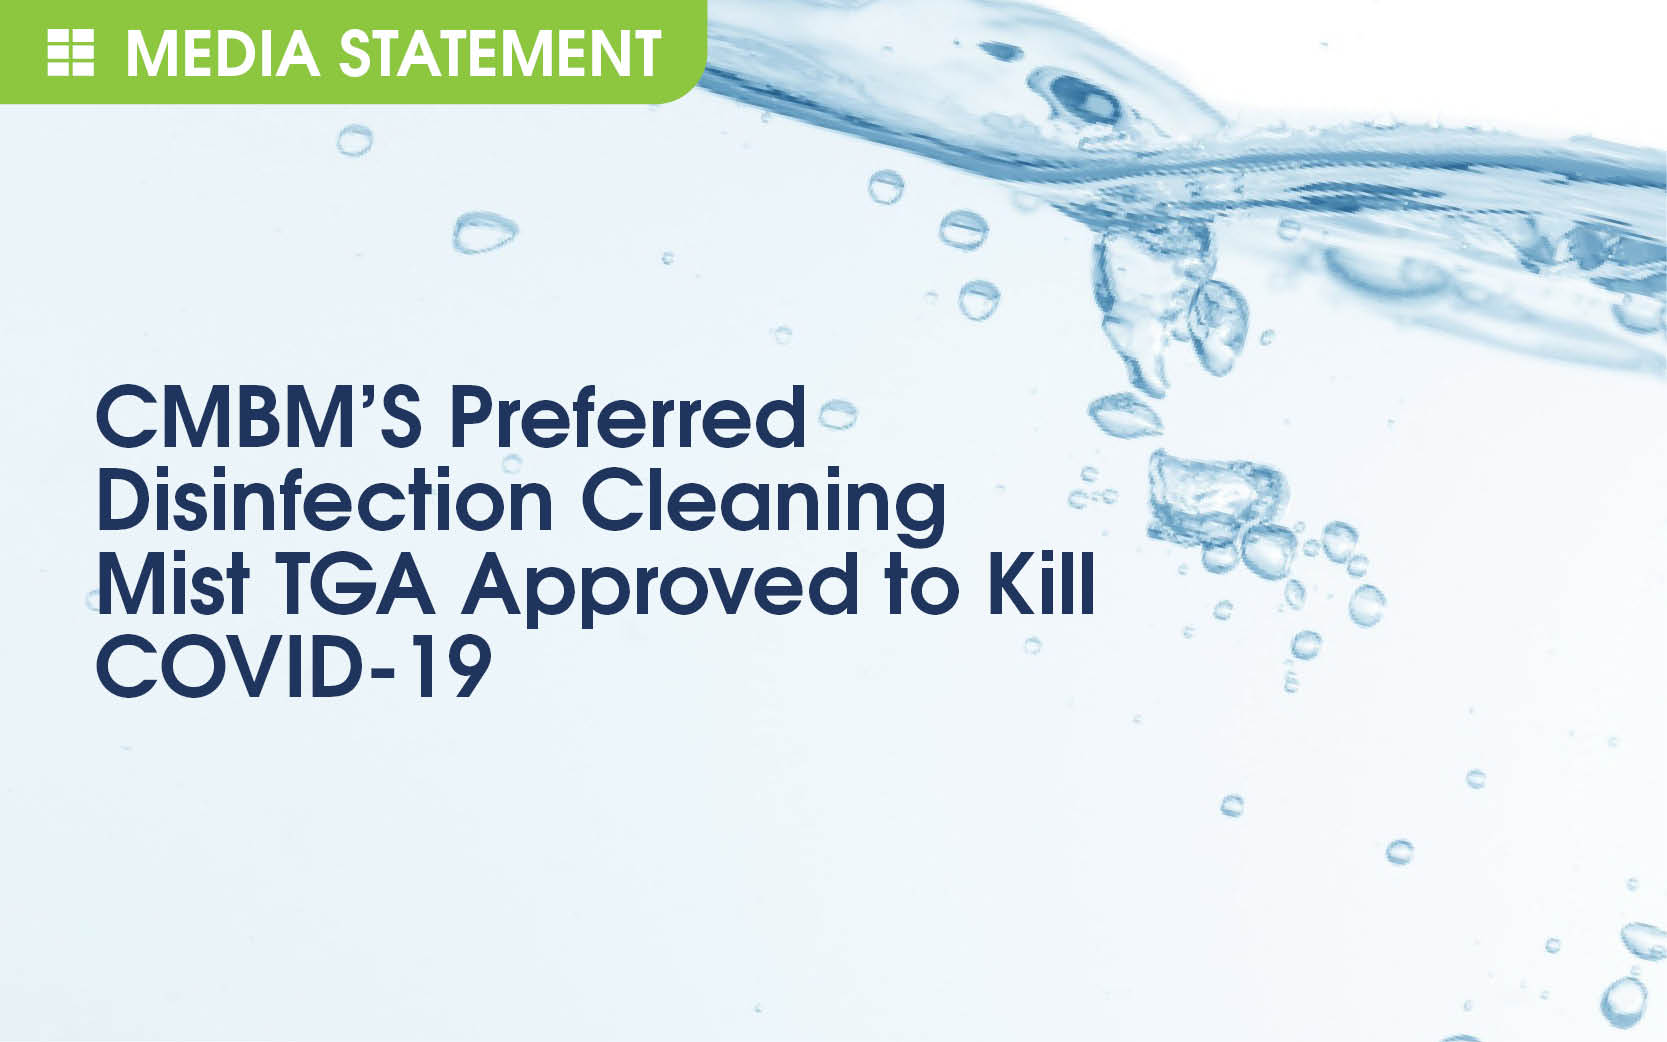 CMBM'S Preferred Disinfection Cleaning Mist TGA Approved to Kill COVID-19